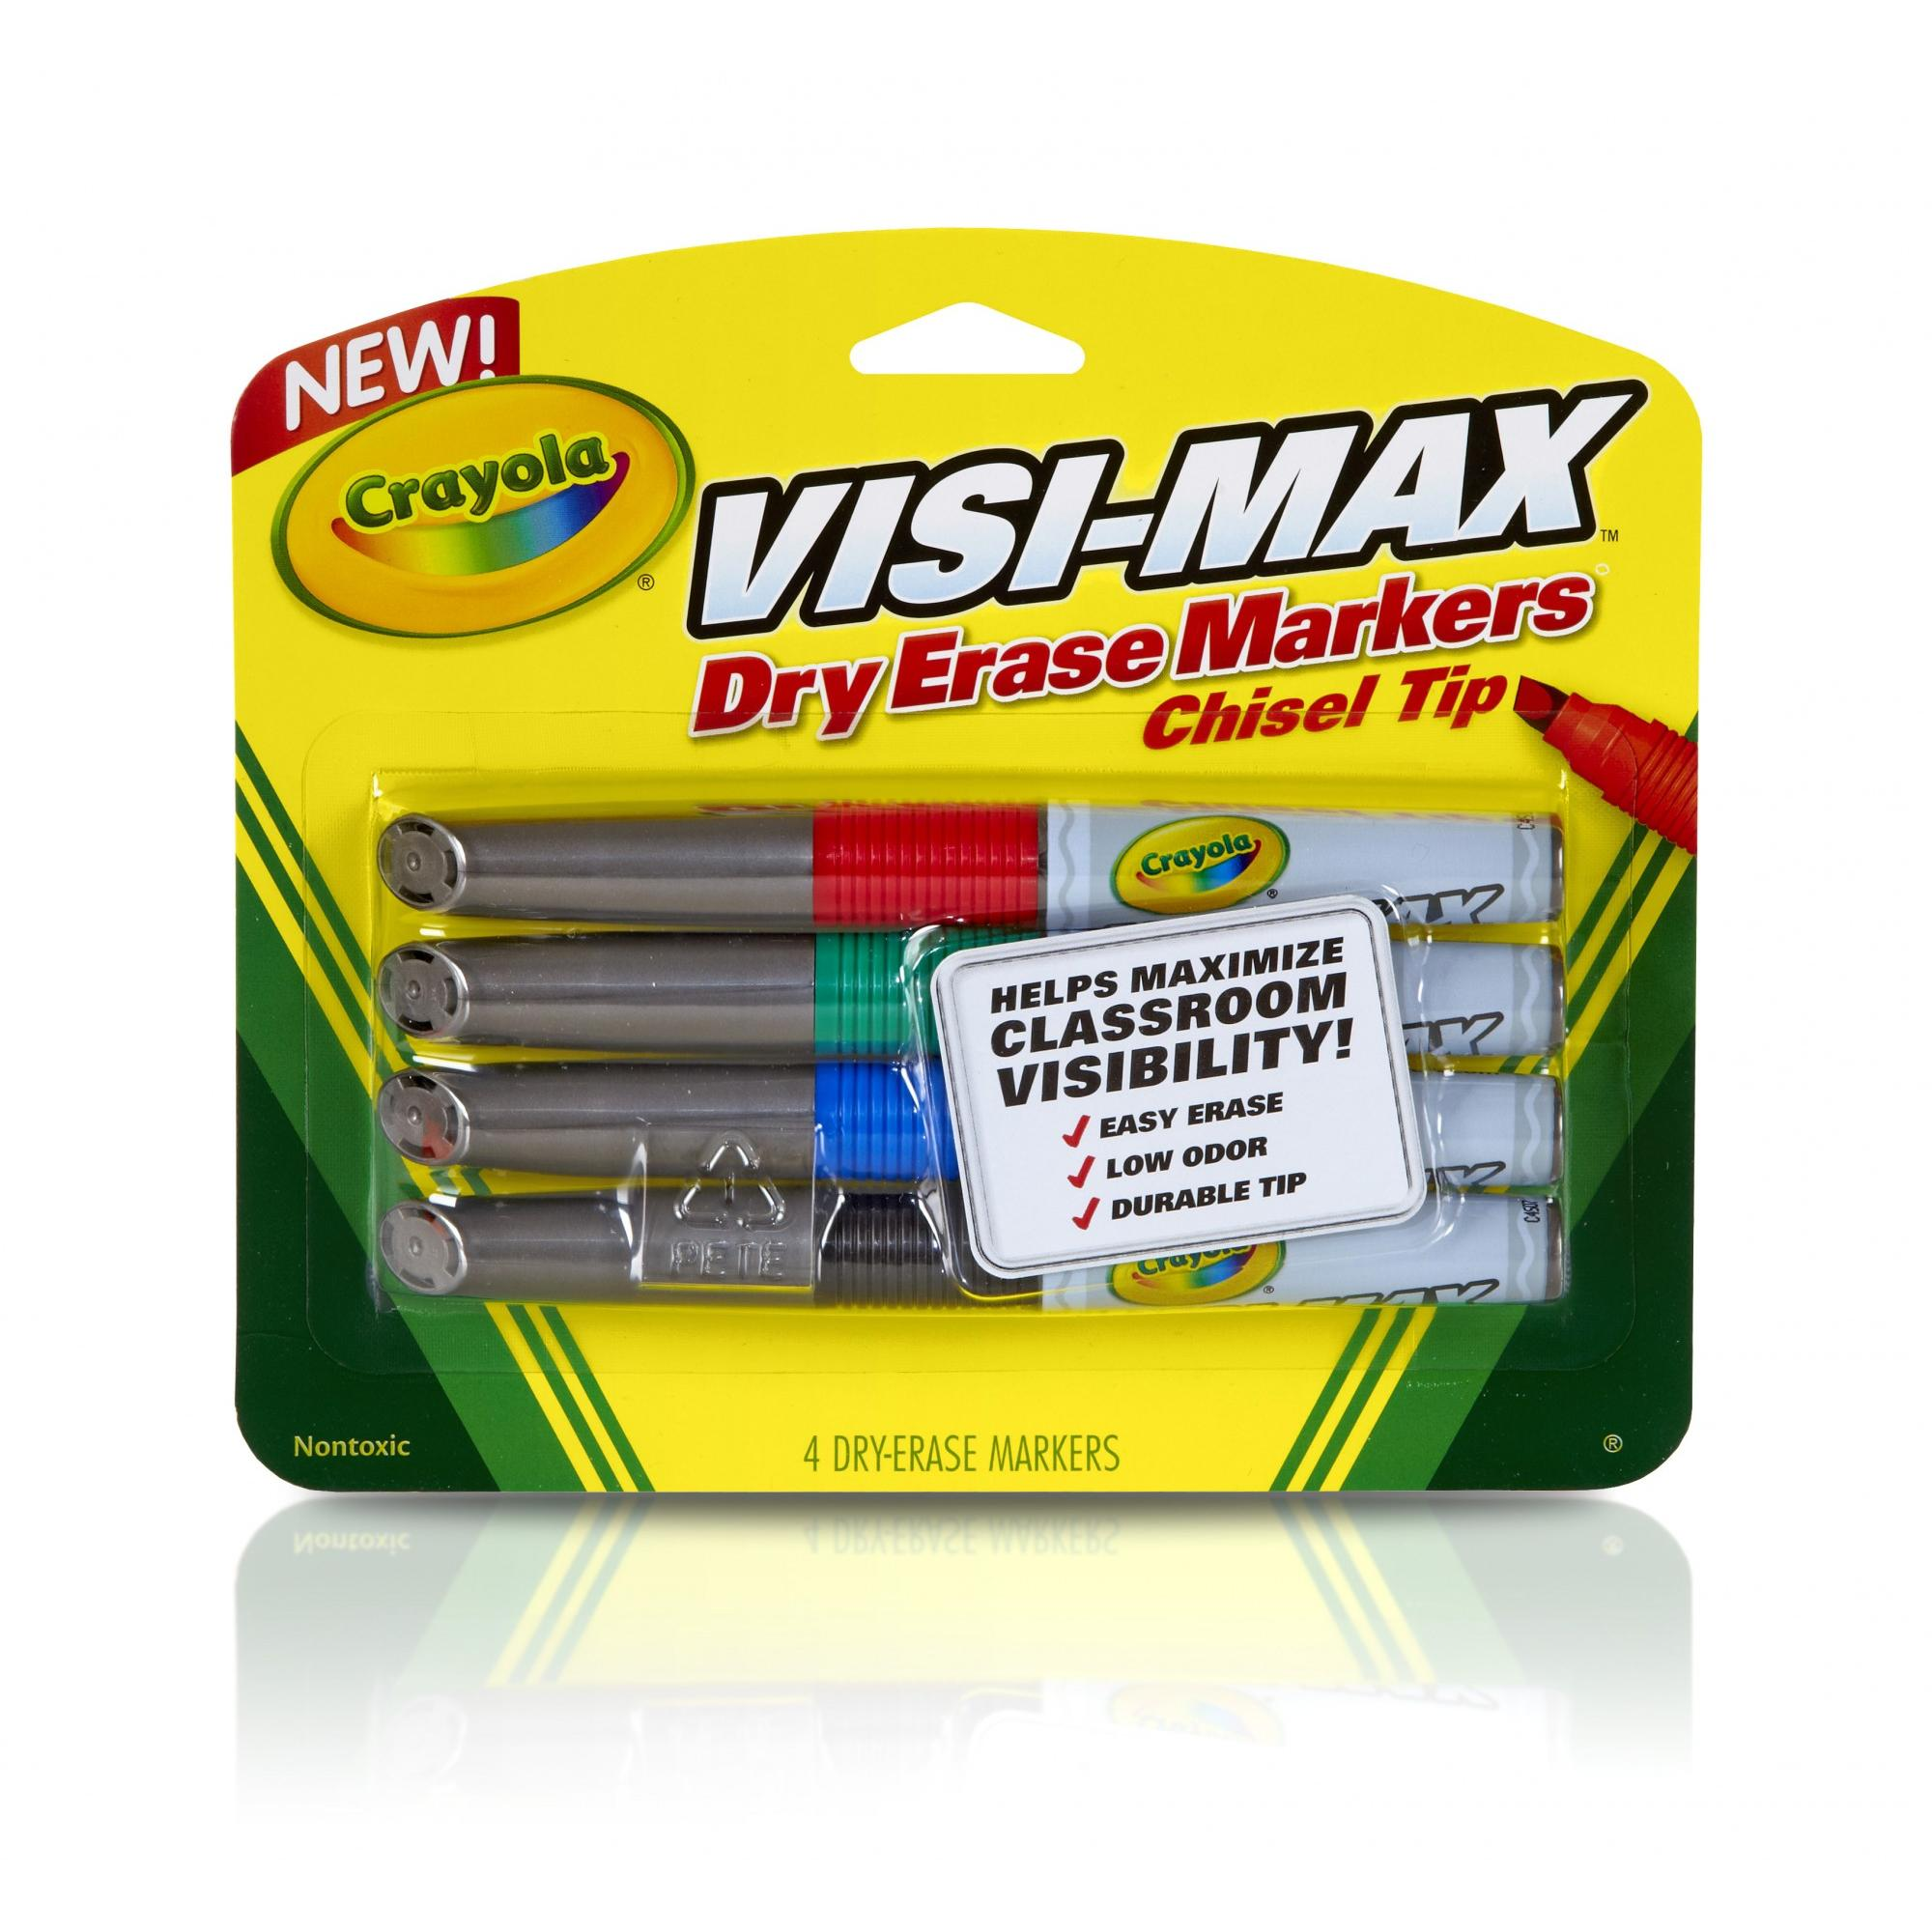 Crayola Visi-Max Dry-Erase Broad Line Markers, 4-Count